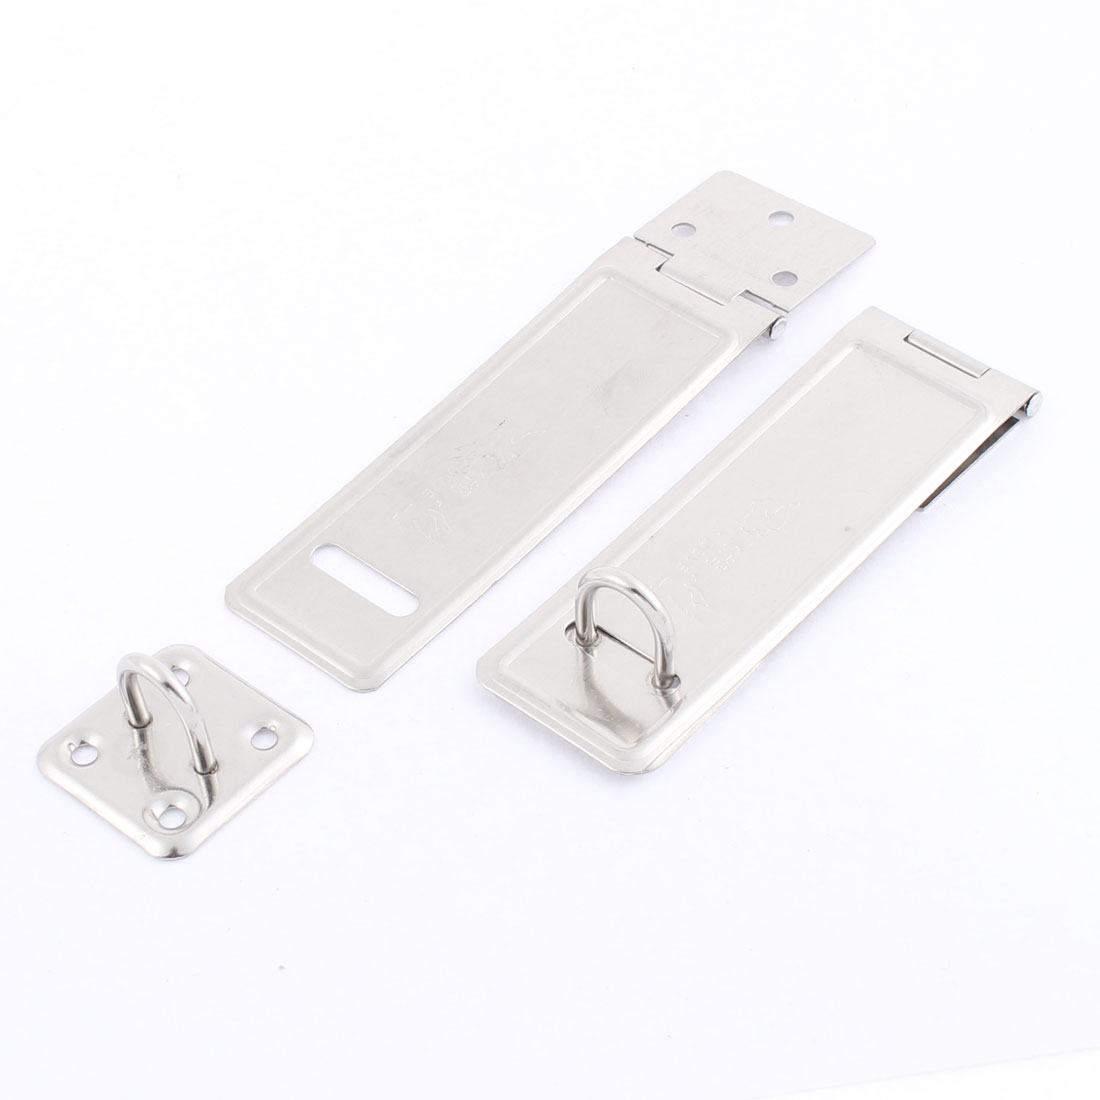 Home Door Stainless Steel Padlock Hasp Staple Set 12cm Length 2 Pcs